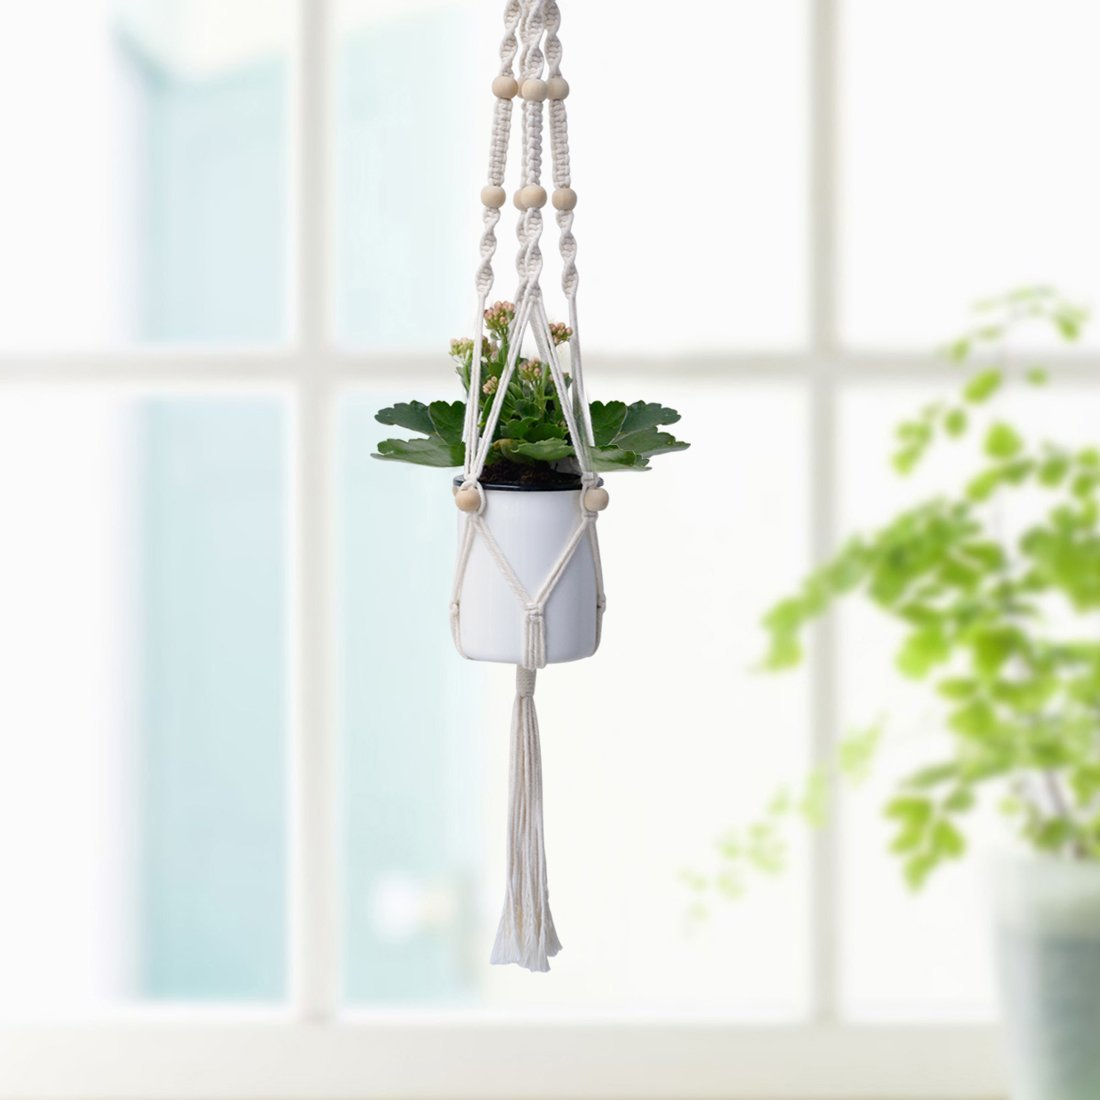 Set of 2 Macrame Plant Hanger Hanging Plant Pot Basket Macrame Hanging Planter